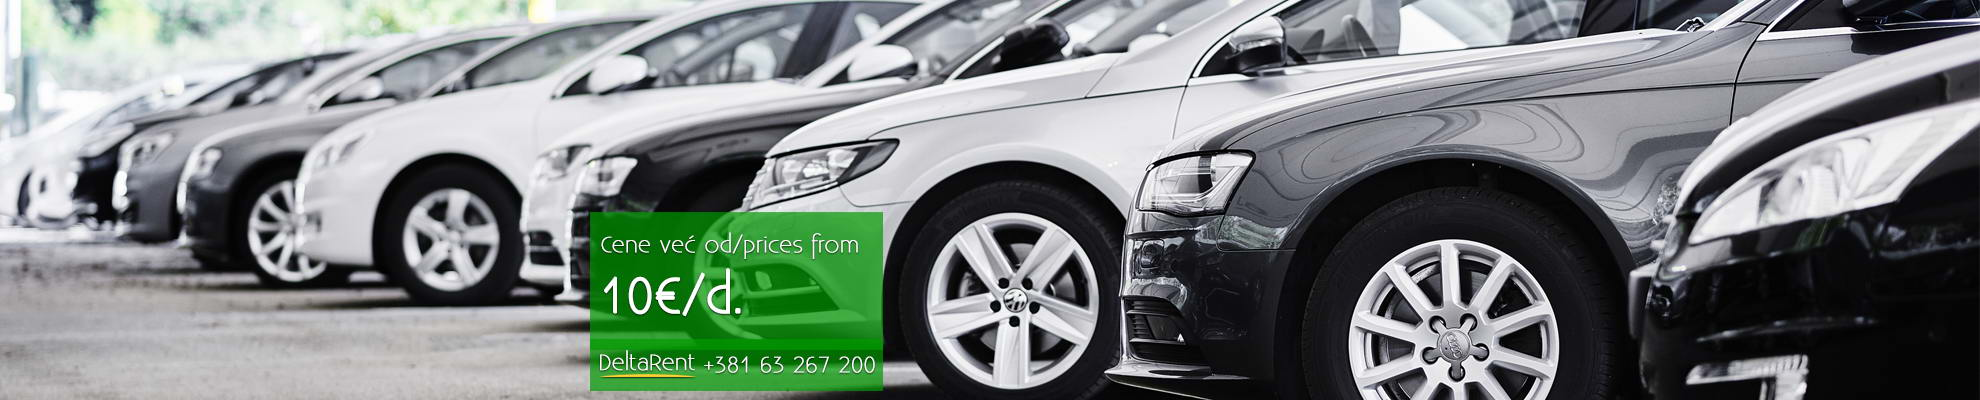 Rent a car Beograde prices | DeltaRent